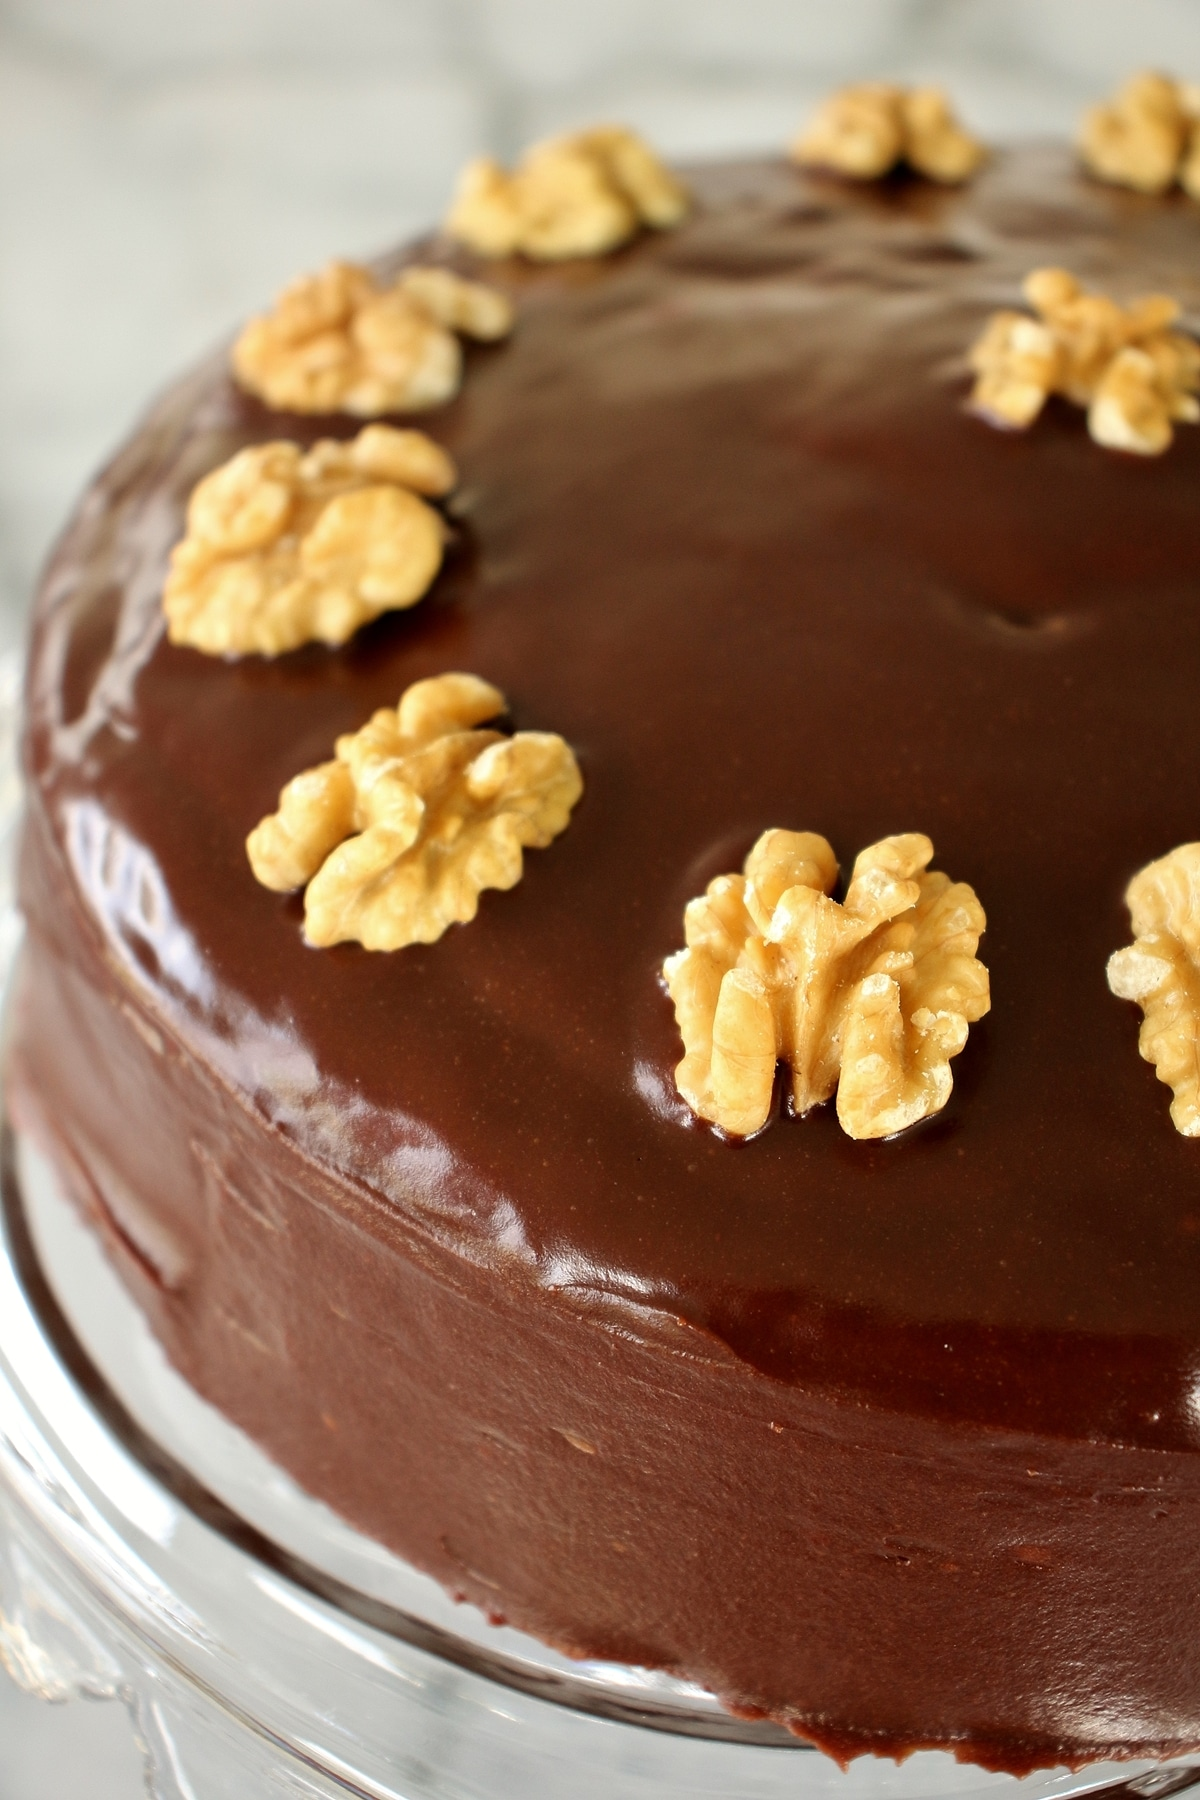 Close up of a zebra cake decorated with a glossy, chocolate glaze, and walnut halves around the circumference of the cake.